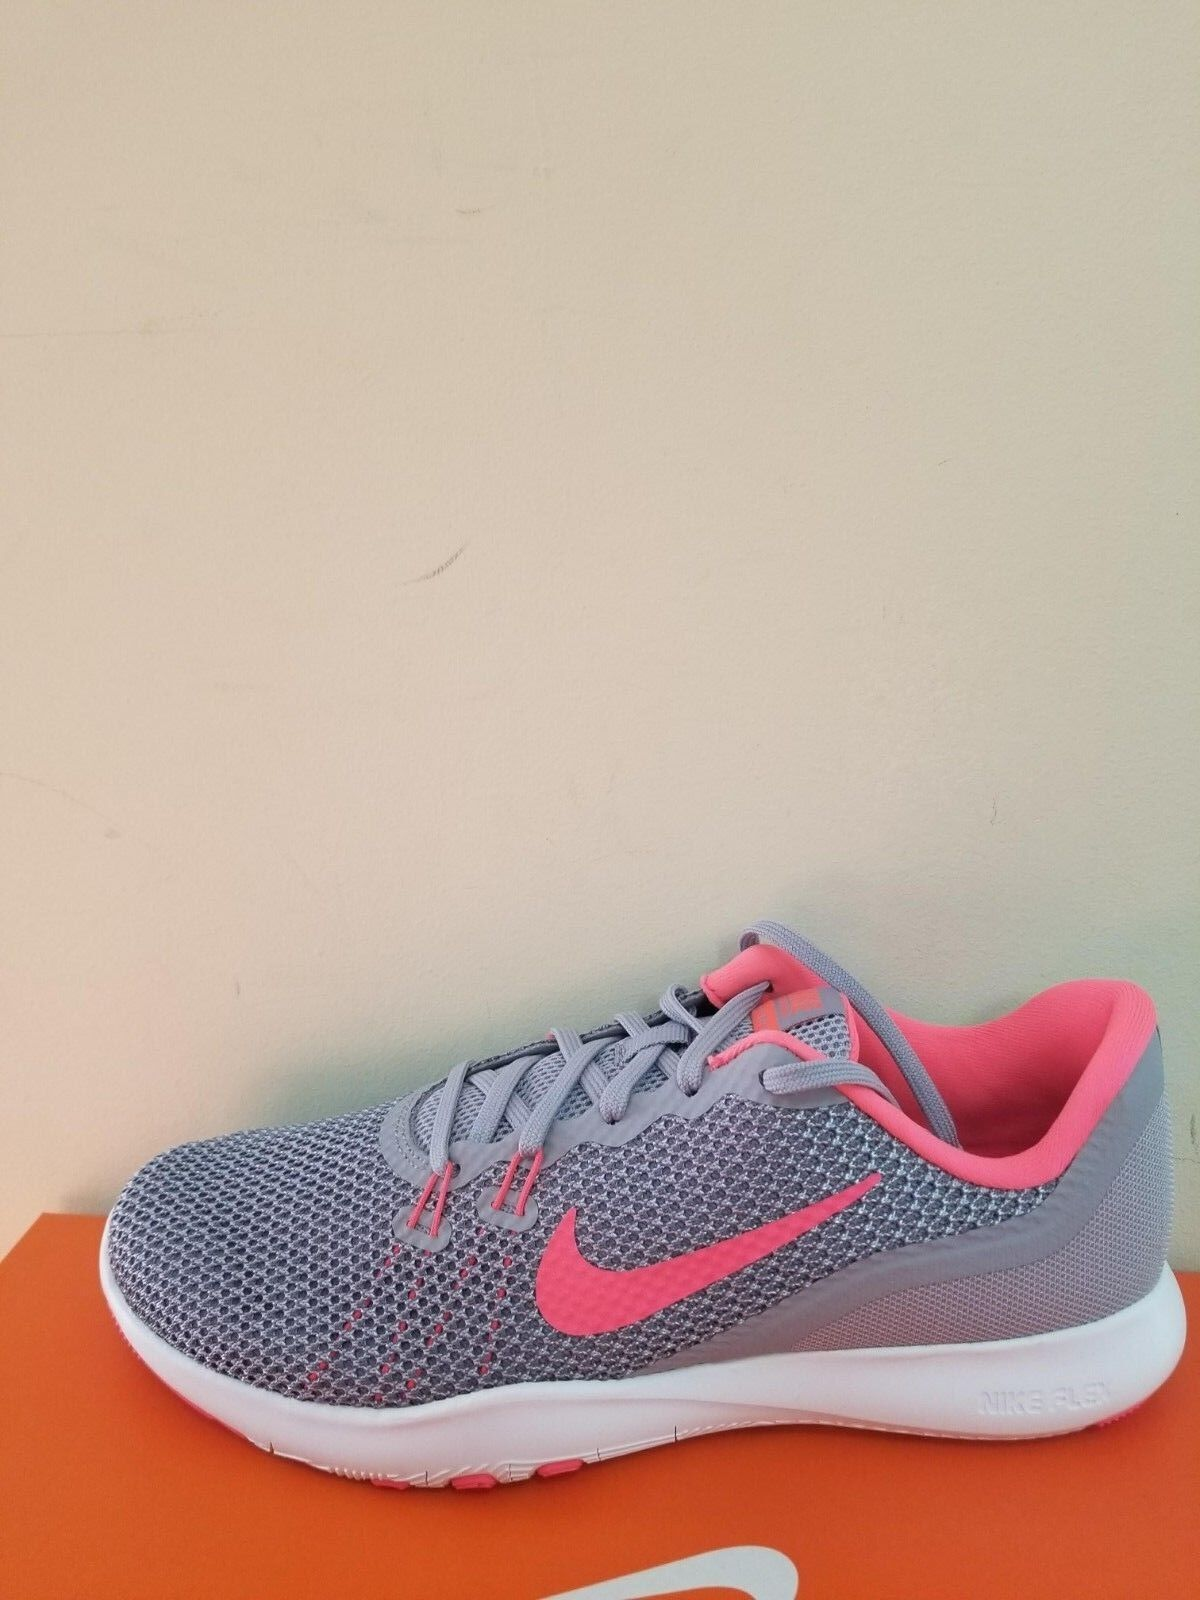 Neuf Nike femmes Flexible Baskets 7 chaussures Taille 10 Nib